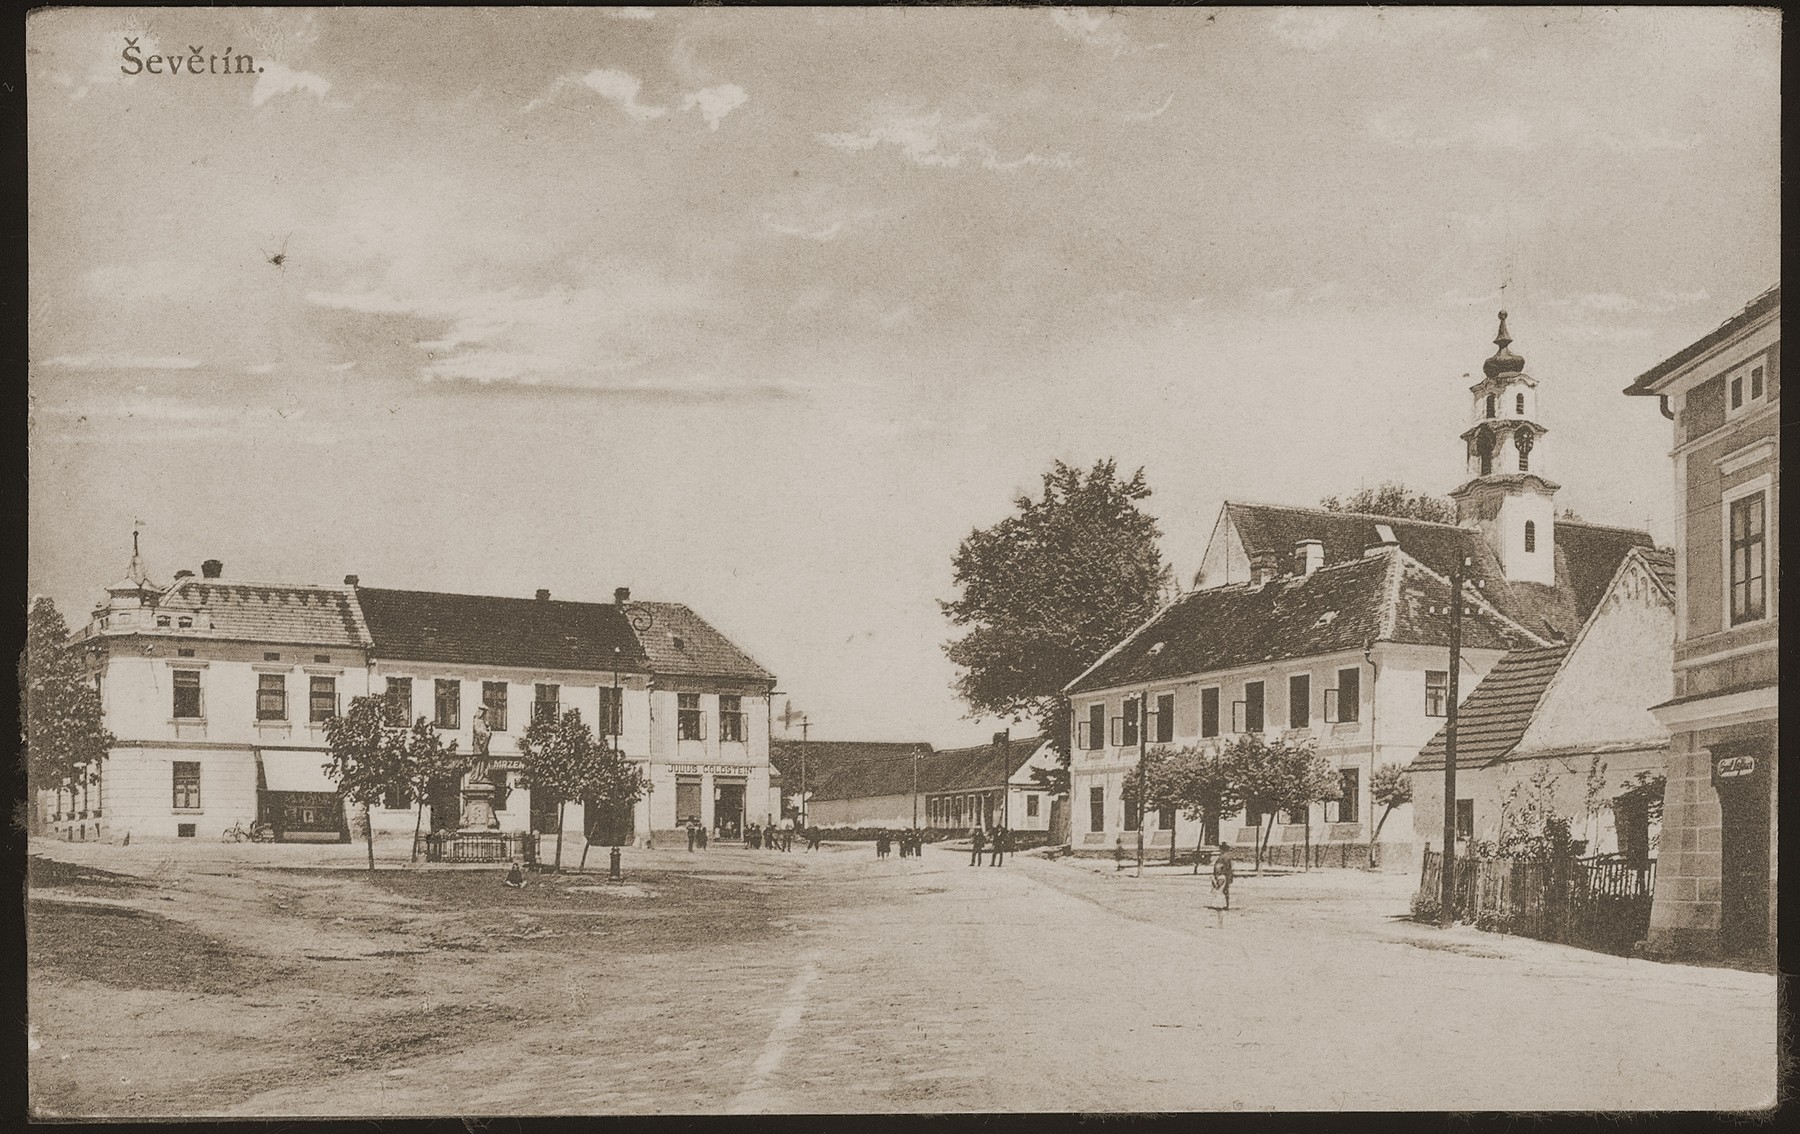 Picture postcard of the market square in Sevetin, Czechoslovakia.    Julius Goldstein's general store is visible at the center left.